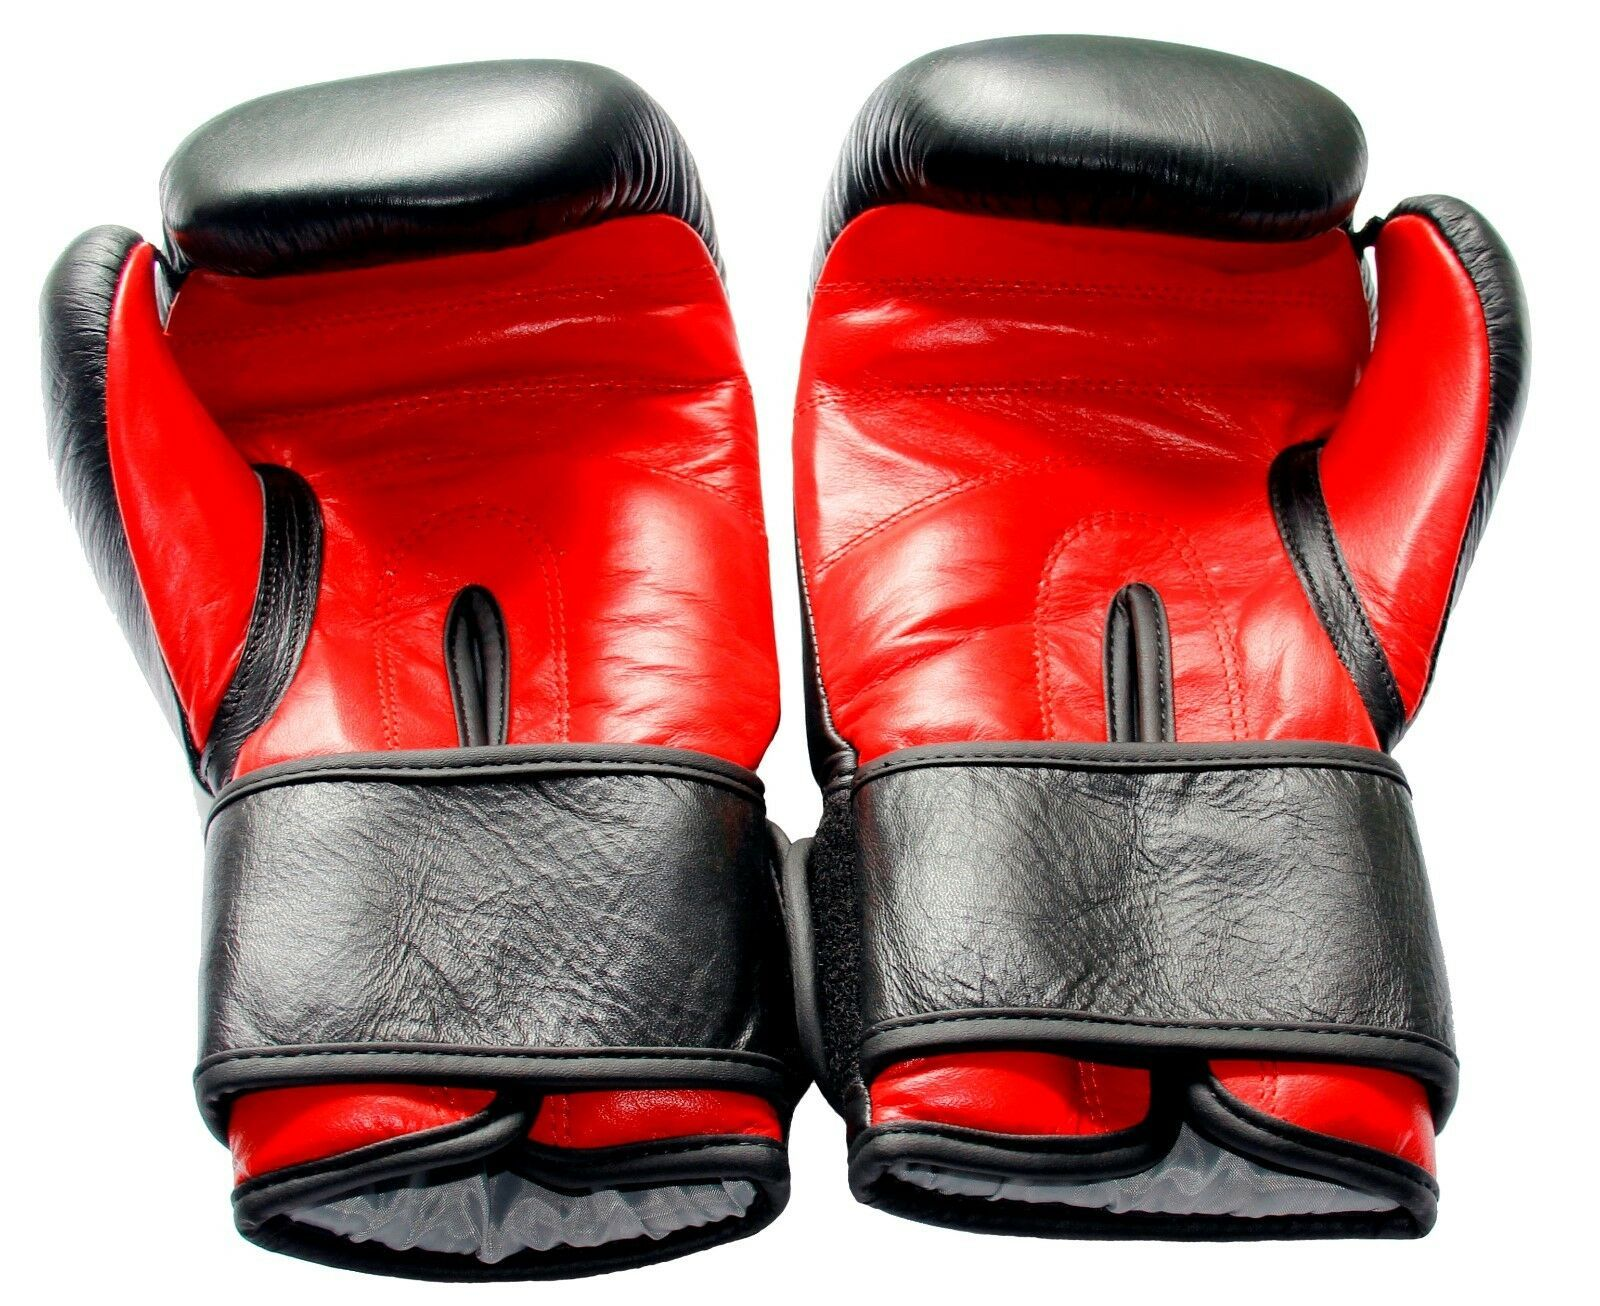 Mexican Handwraps Free Yellow Boxing Gloves Bonded Leather with Air Max Palm